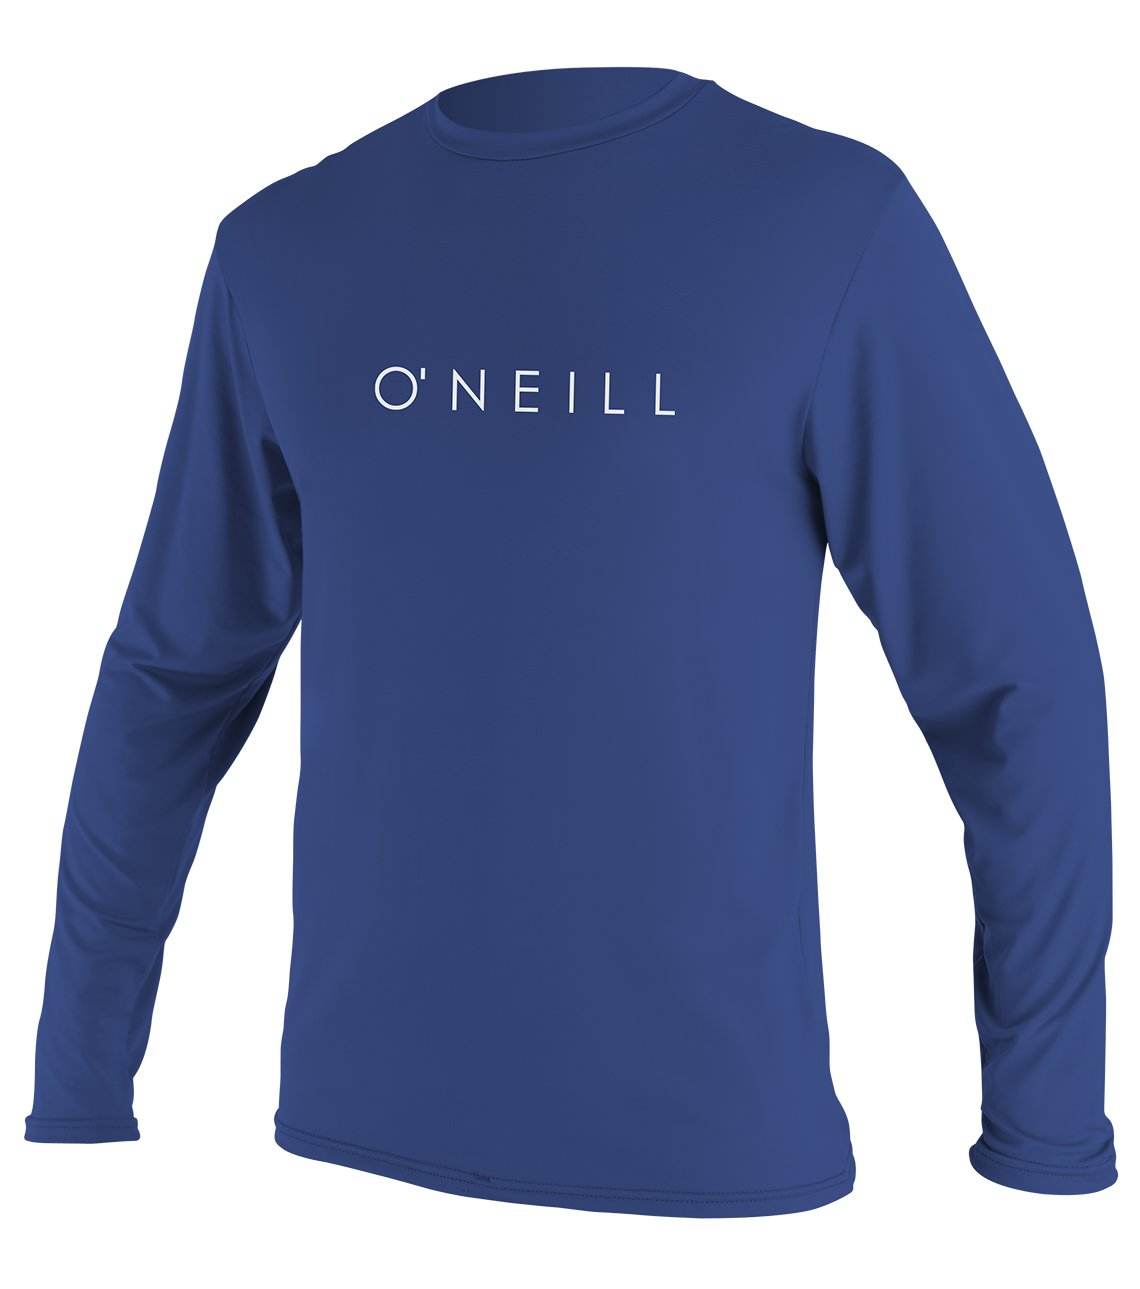 O'Neill Youth Basic Skins UPF 30 + Long Sleeve Sun Shirt, Pacific, 6